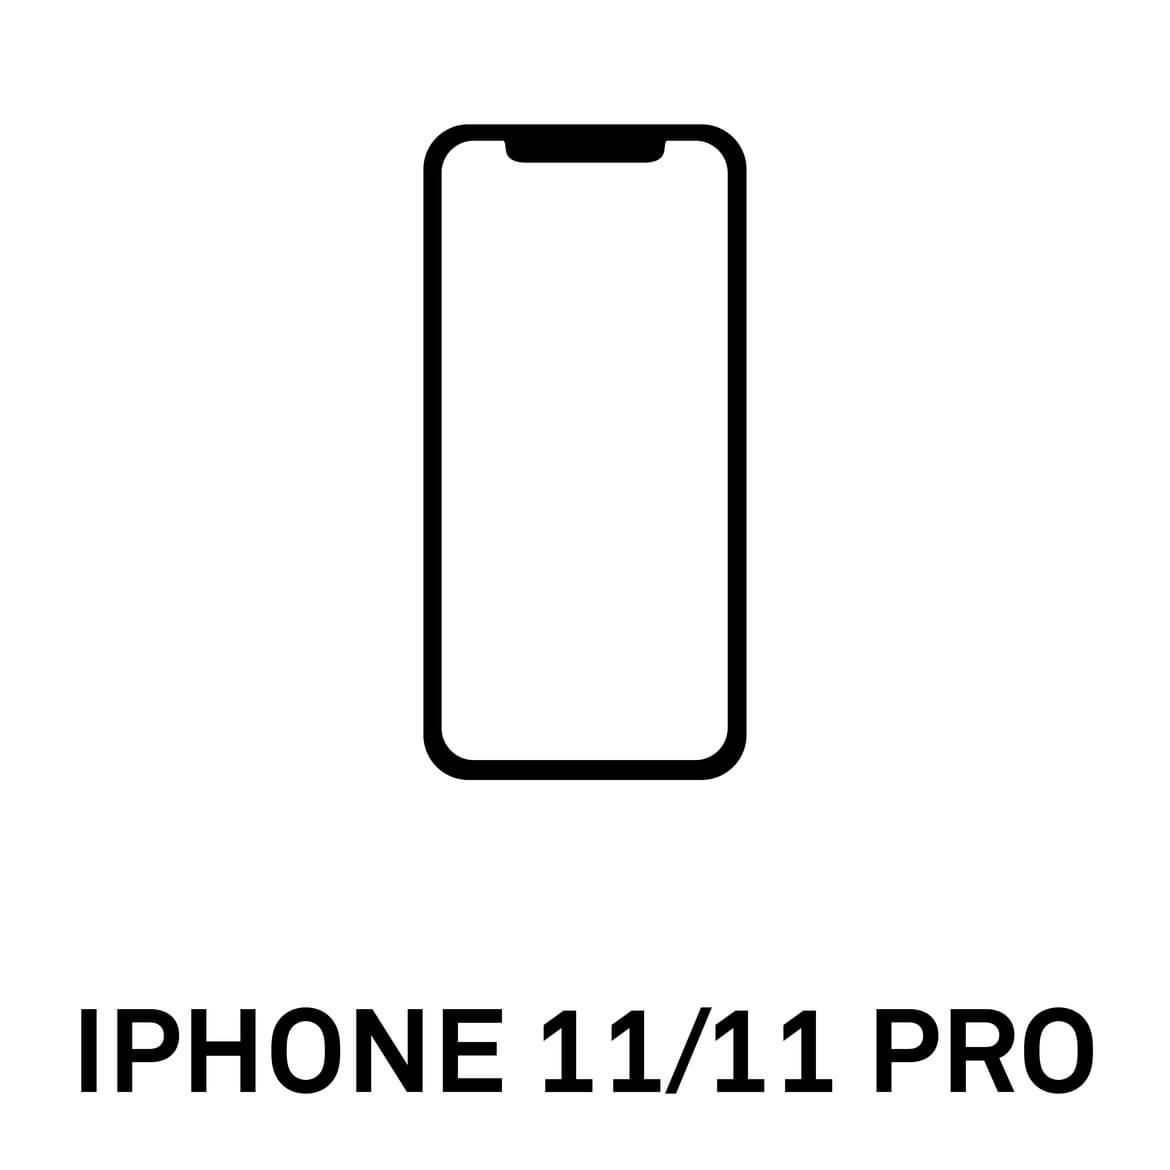 web_icons_laptop_iphones_11-11pro.jpg